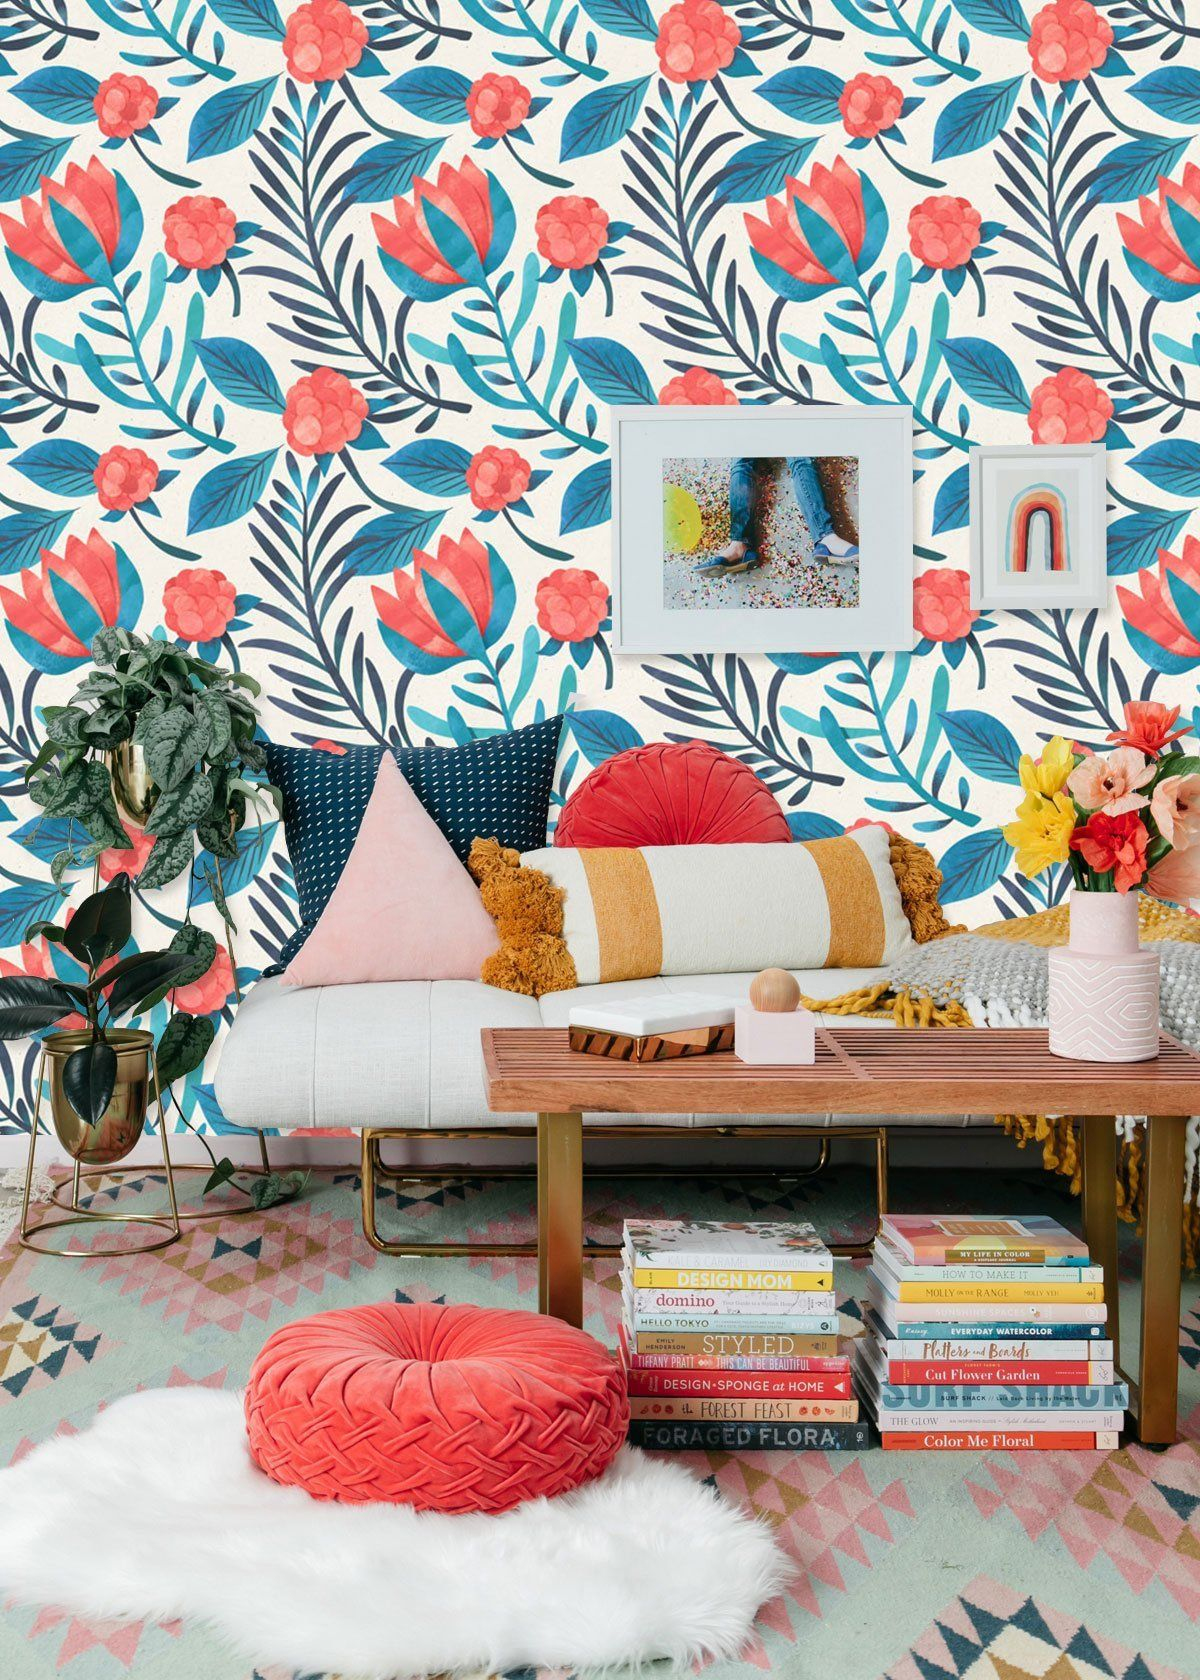 Bright Floral Wall Mural, Handpainted Crimson and Teal